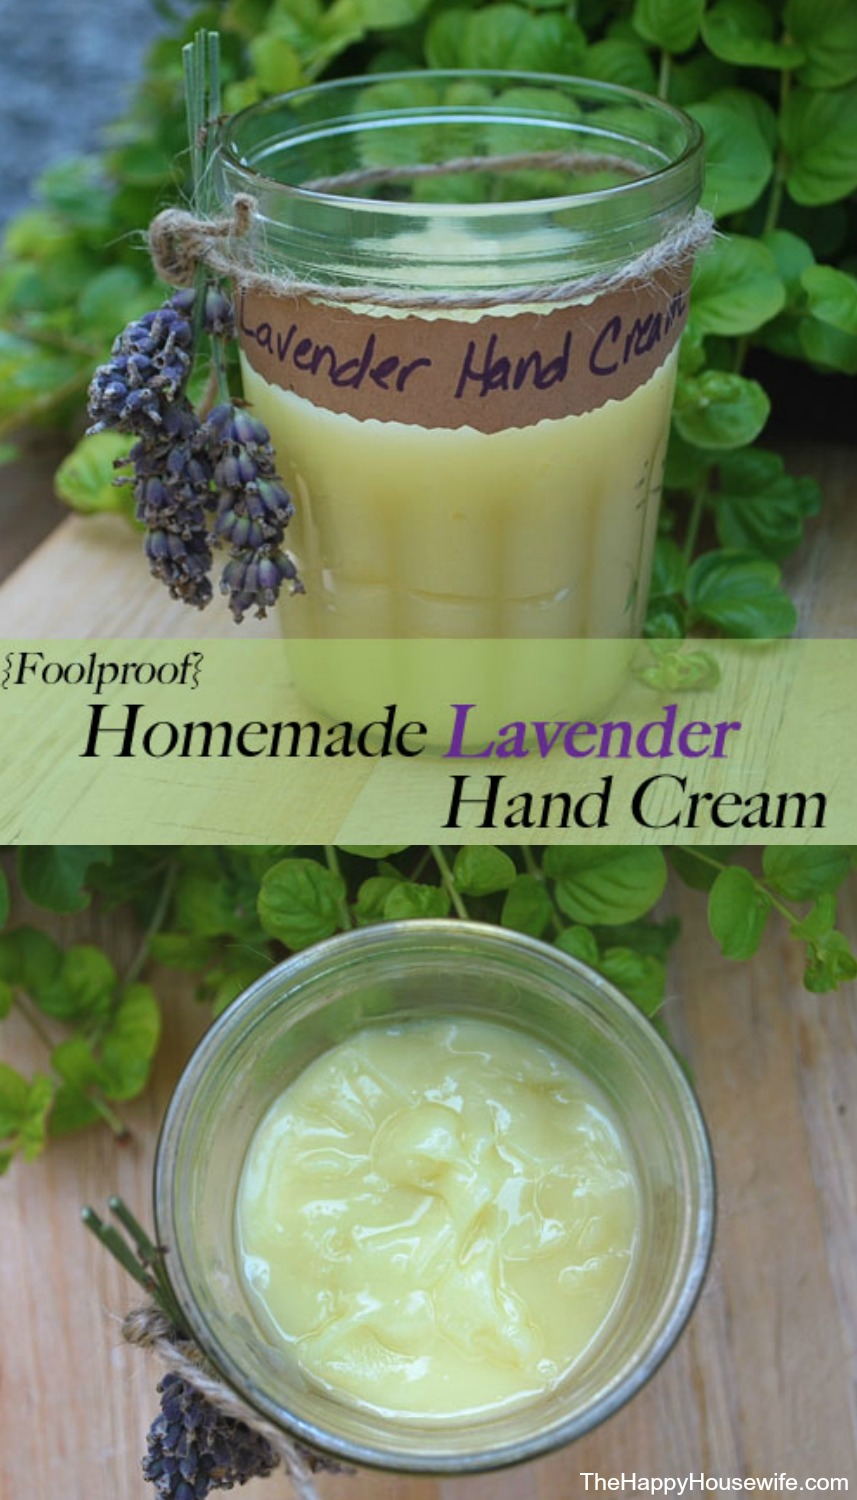 Homemade Lavender Hand Cream | The Happy Housewife